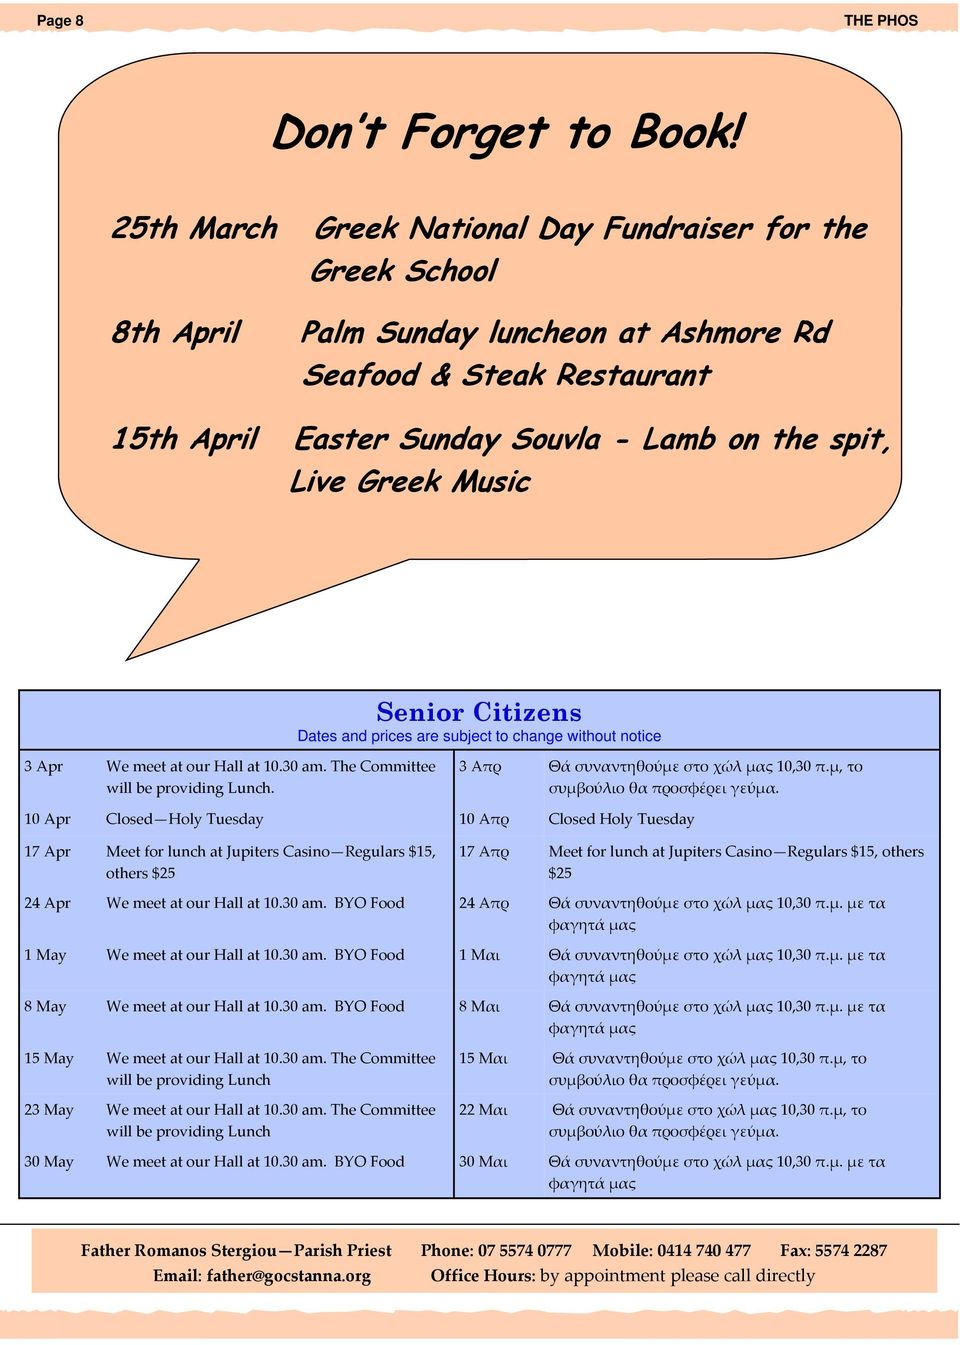 Music Senior Citizens Dates and prices are subject to change without notice 3 Apr We meet at our Hall at 10.30 am. The Committee will be providing Lunch. 3 Απρ Θά συναντηθούμε στο χώλ μας 10,30 π.